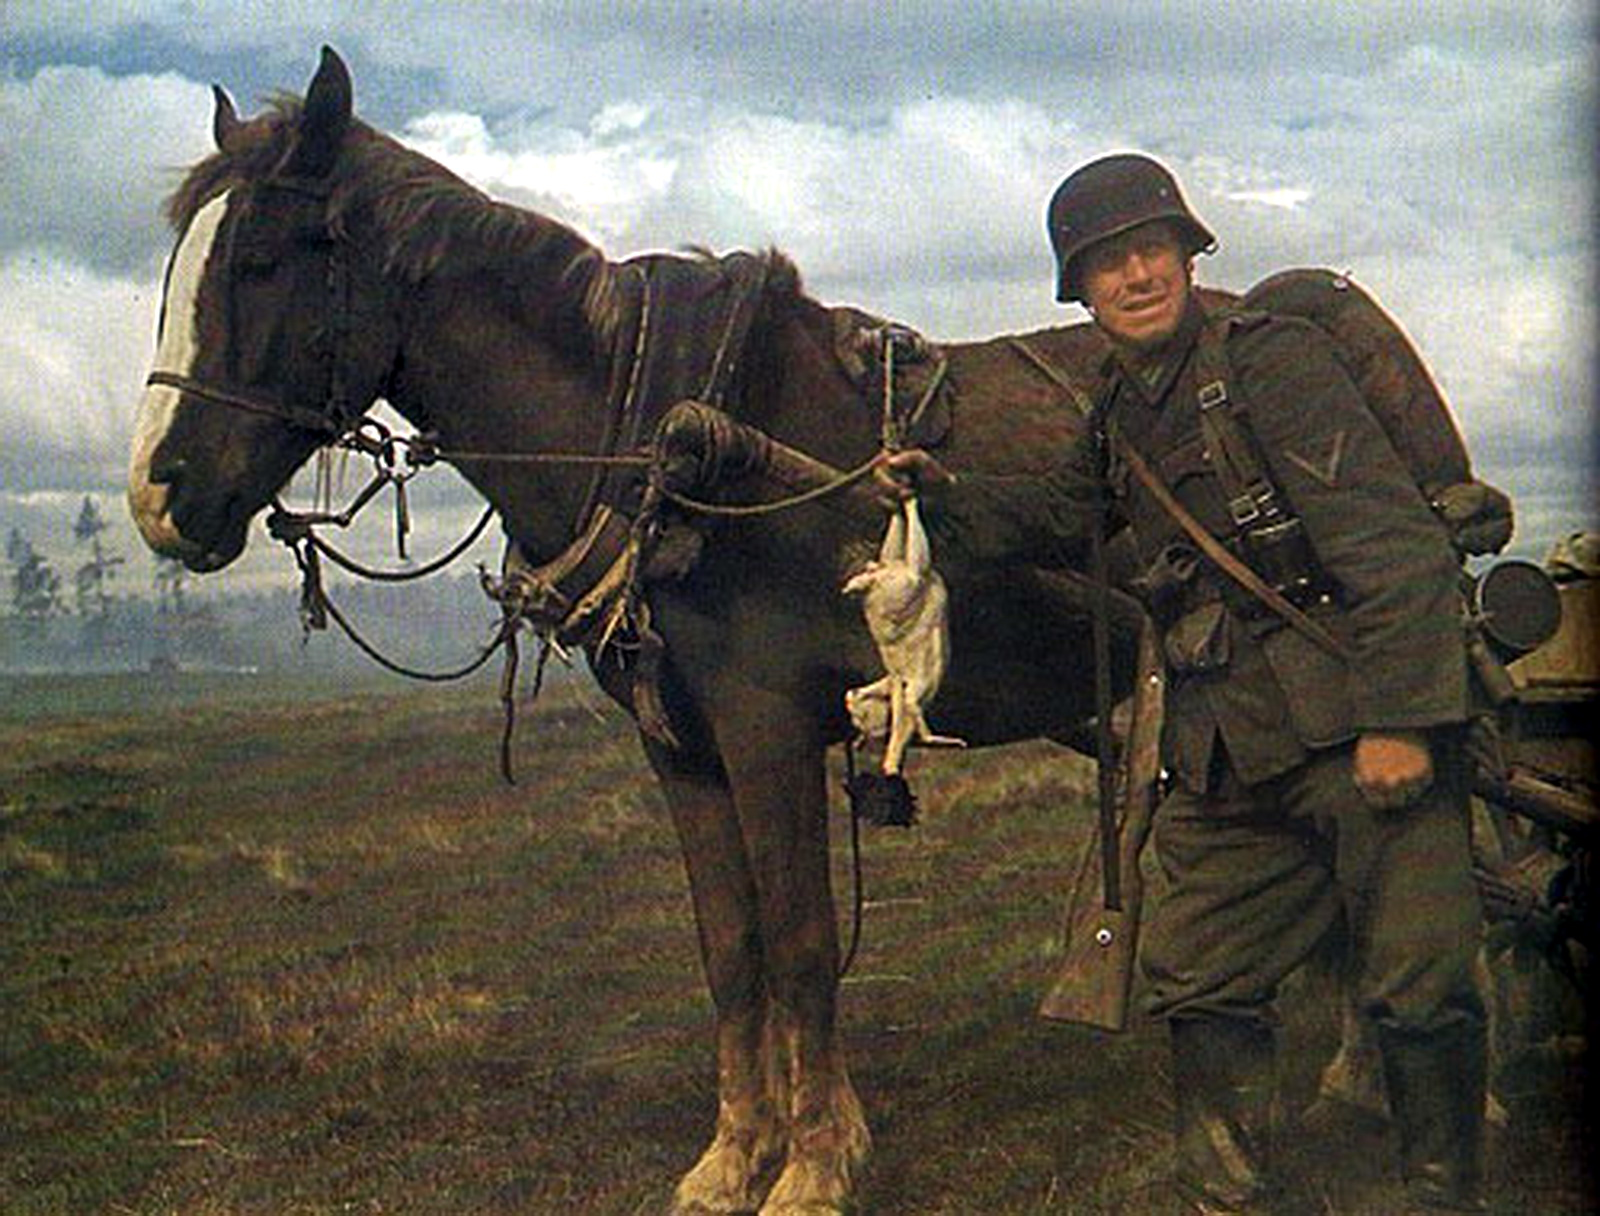 german soldier horse k98.jpg